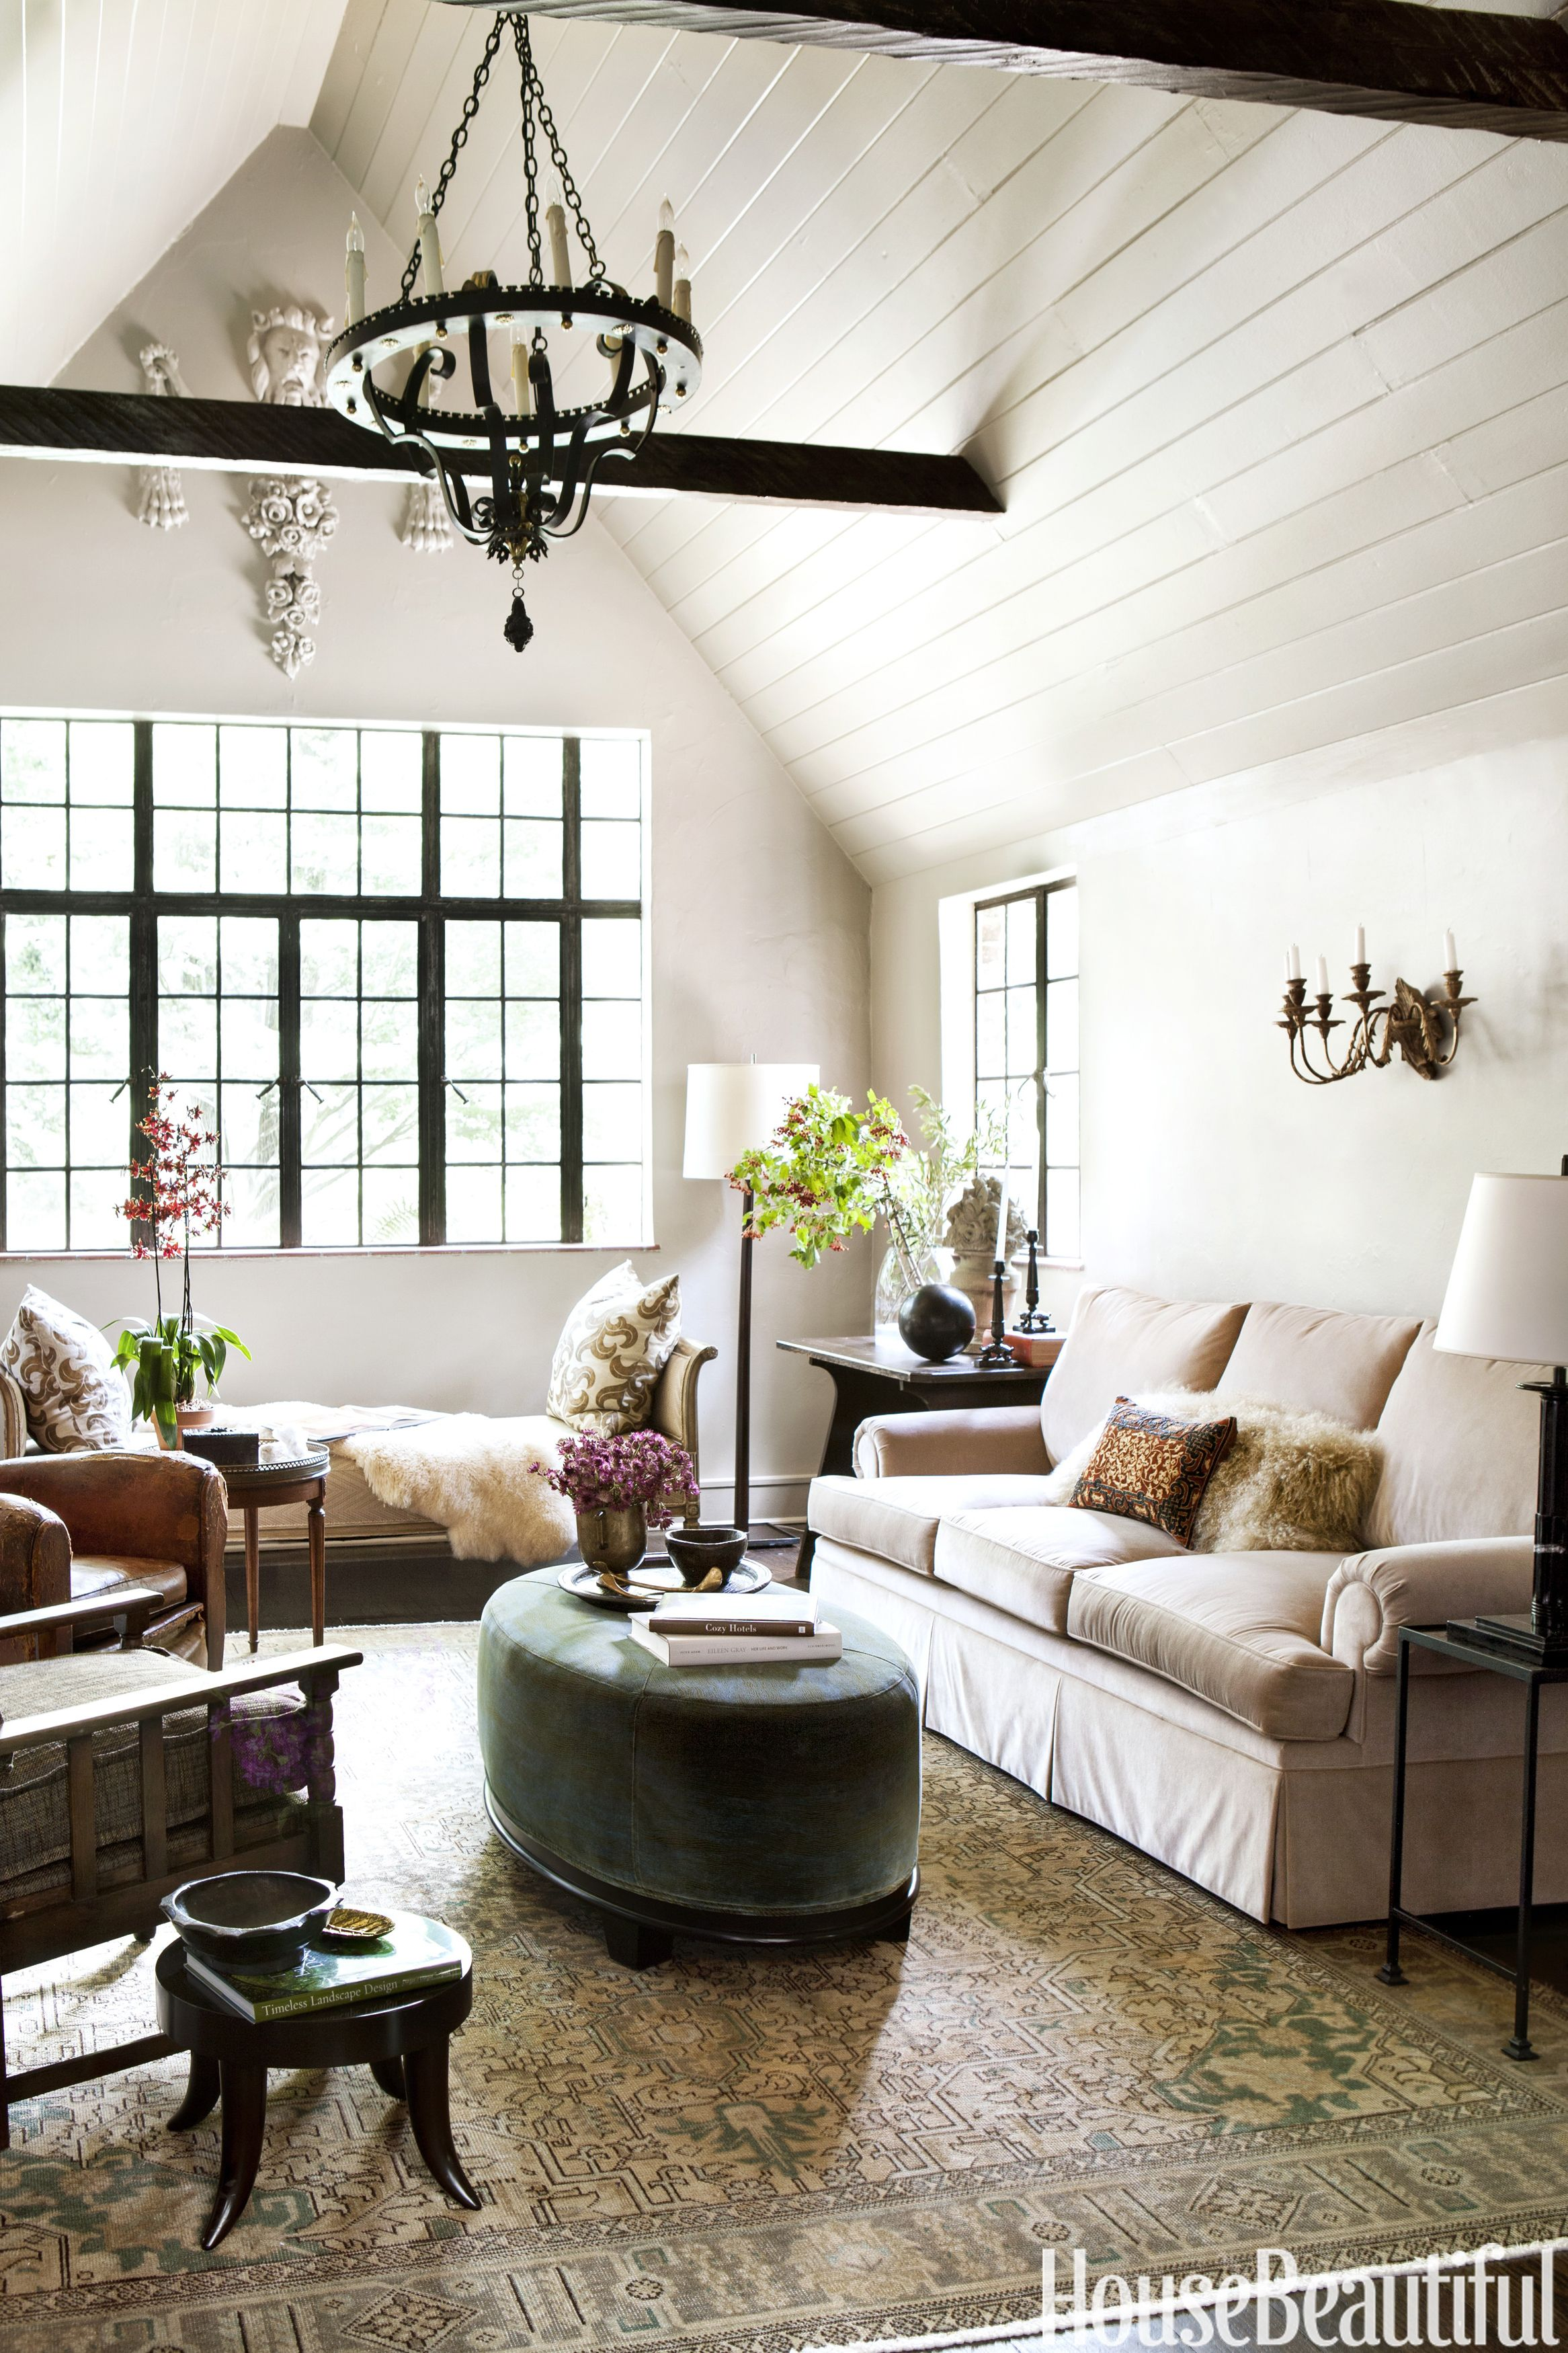 ideas how to decorate a living room rustic wall paint colors 60 best decorating designs housebeautiful com